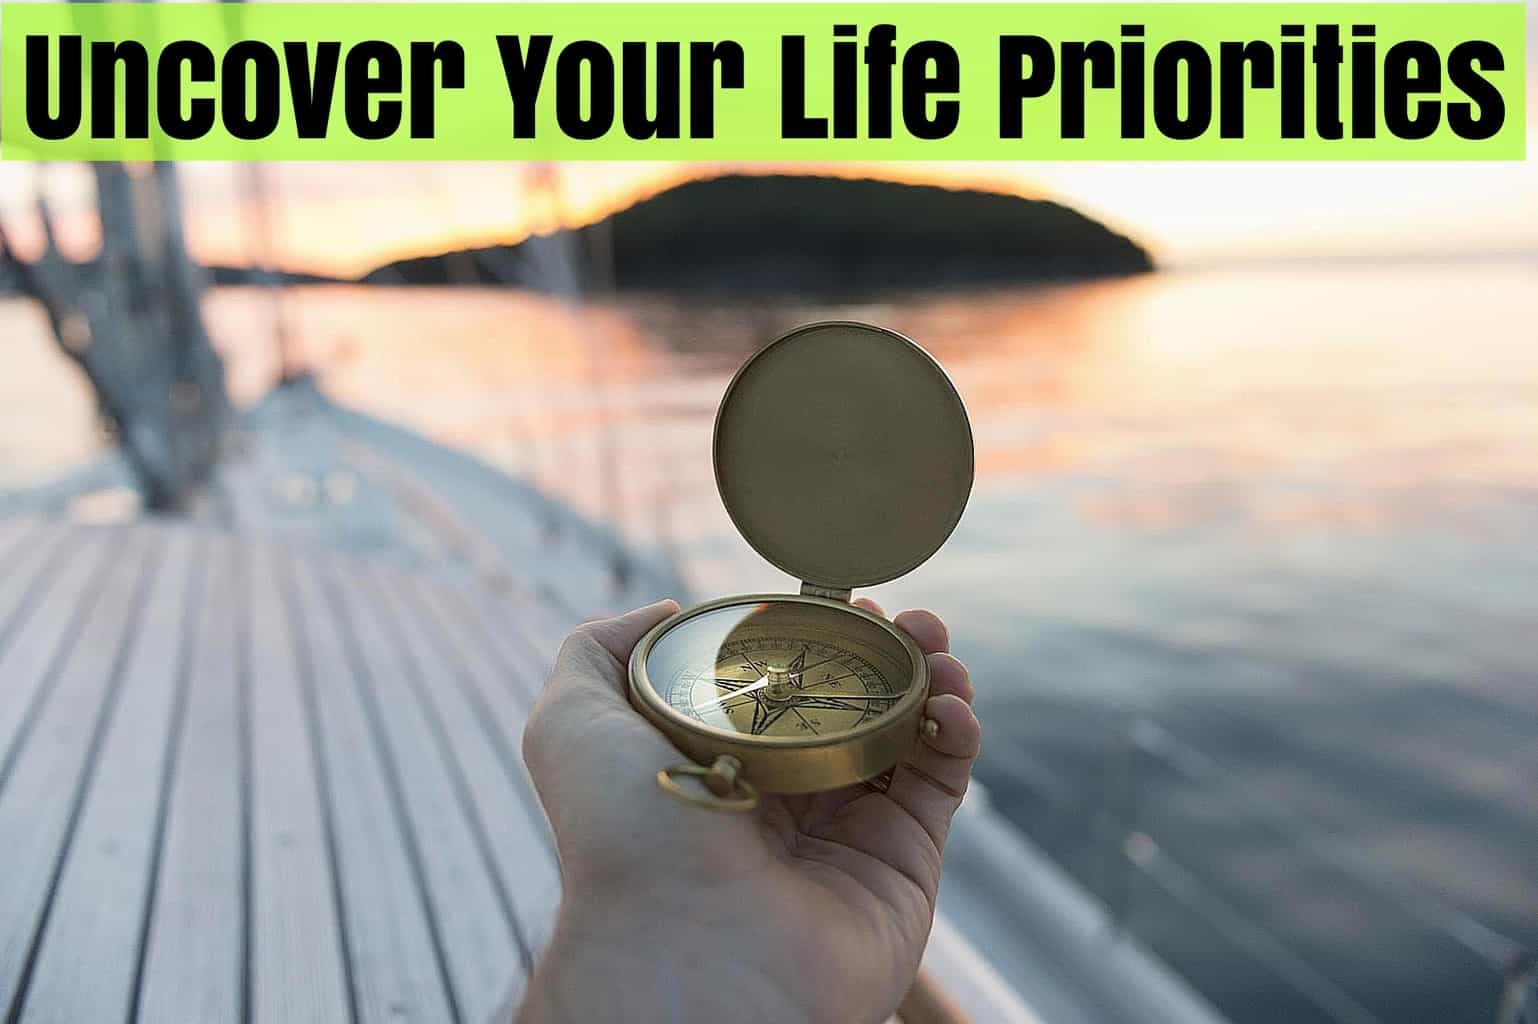 Uncover Your Life Priorities Course